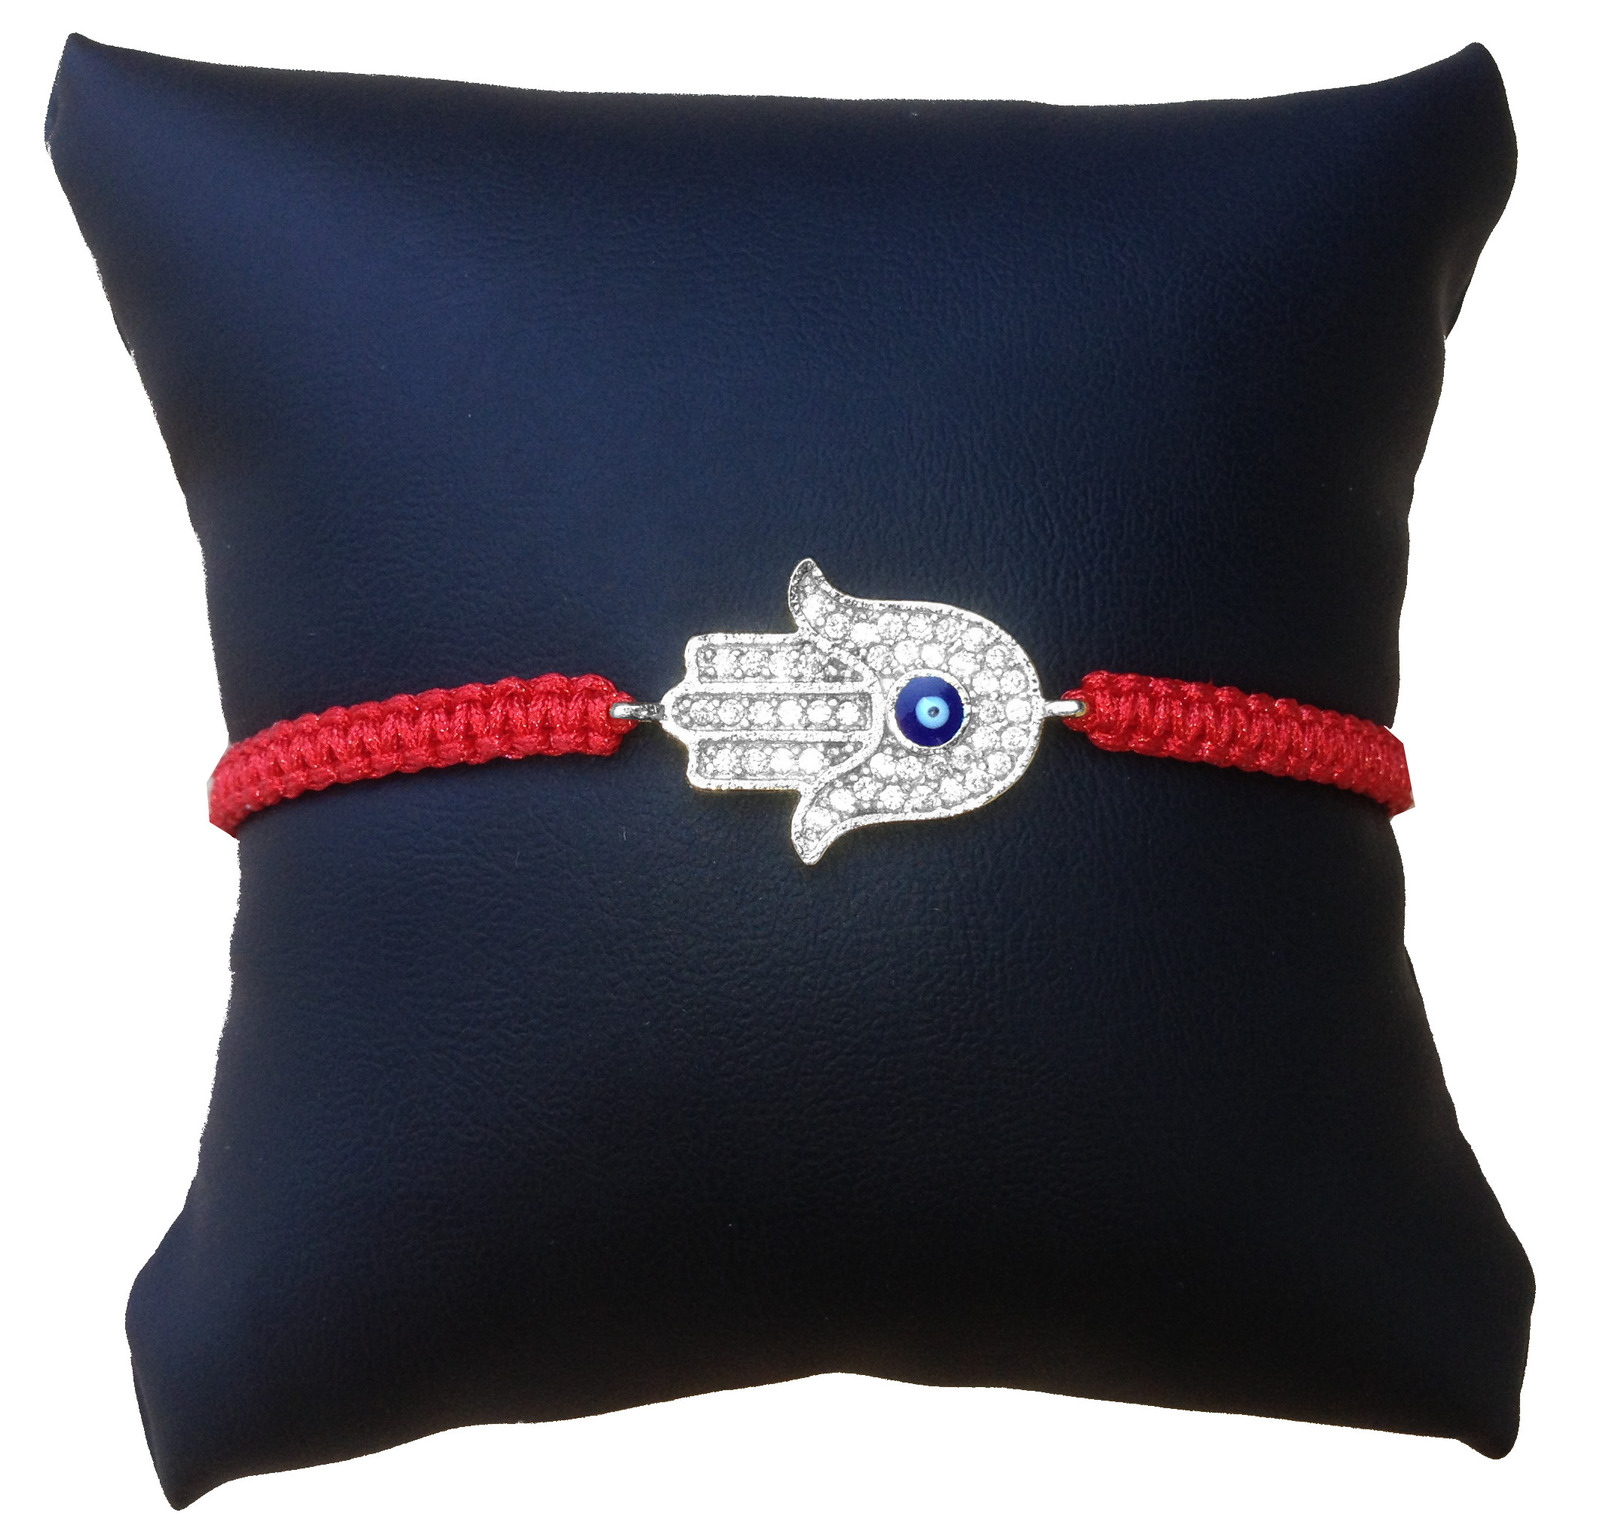 Primary image for Hamsa Hand with Evil Eye Braided Bracelet, Red Cord and Silver Plated